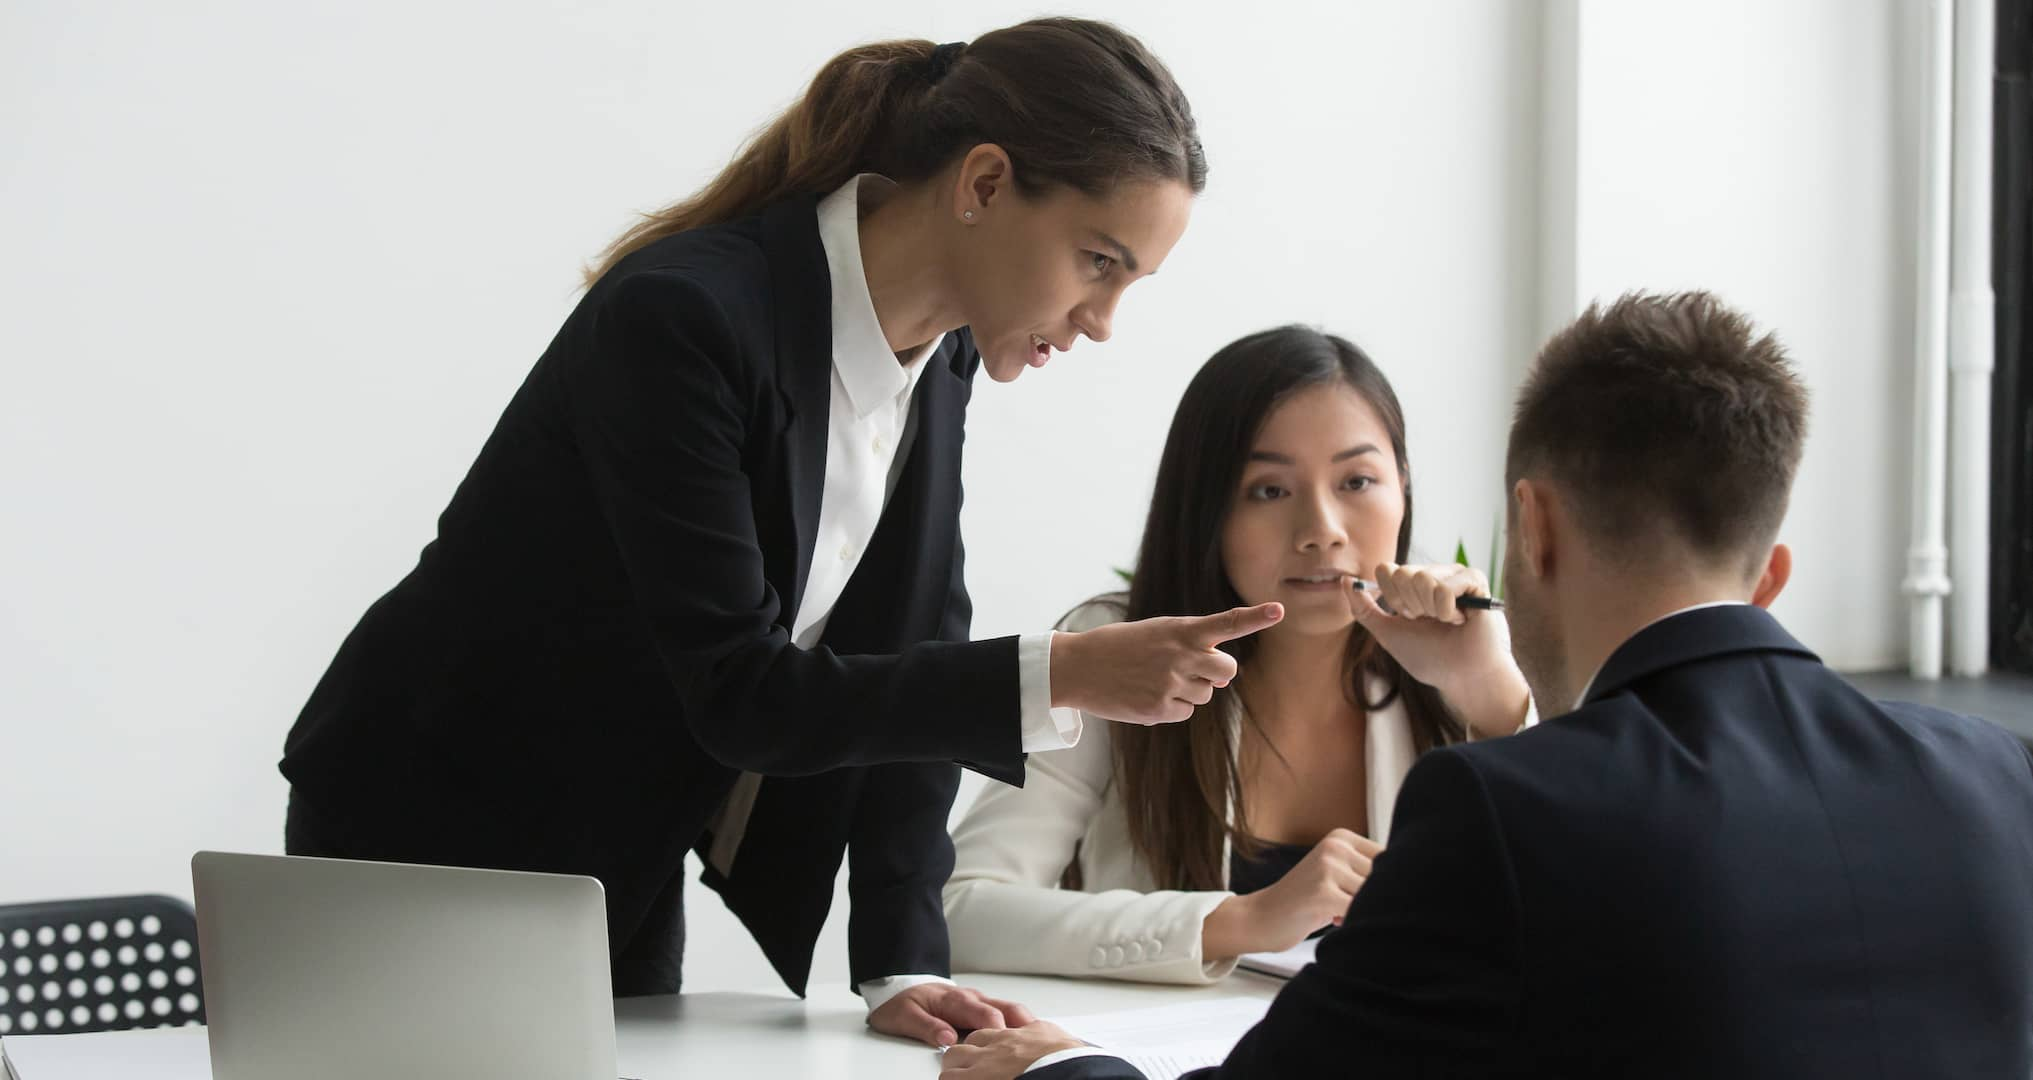 female scolding male and female employees in an office setting